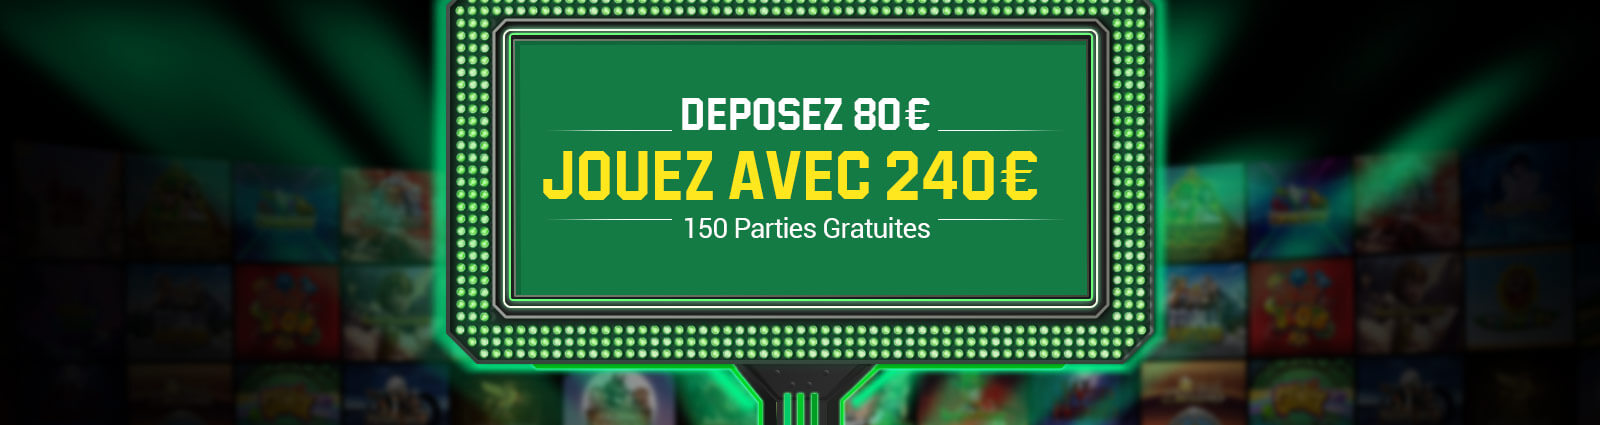 Poker en ligne gratuit belgique best ac casino for slots